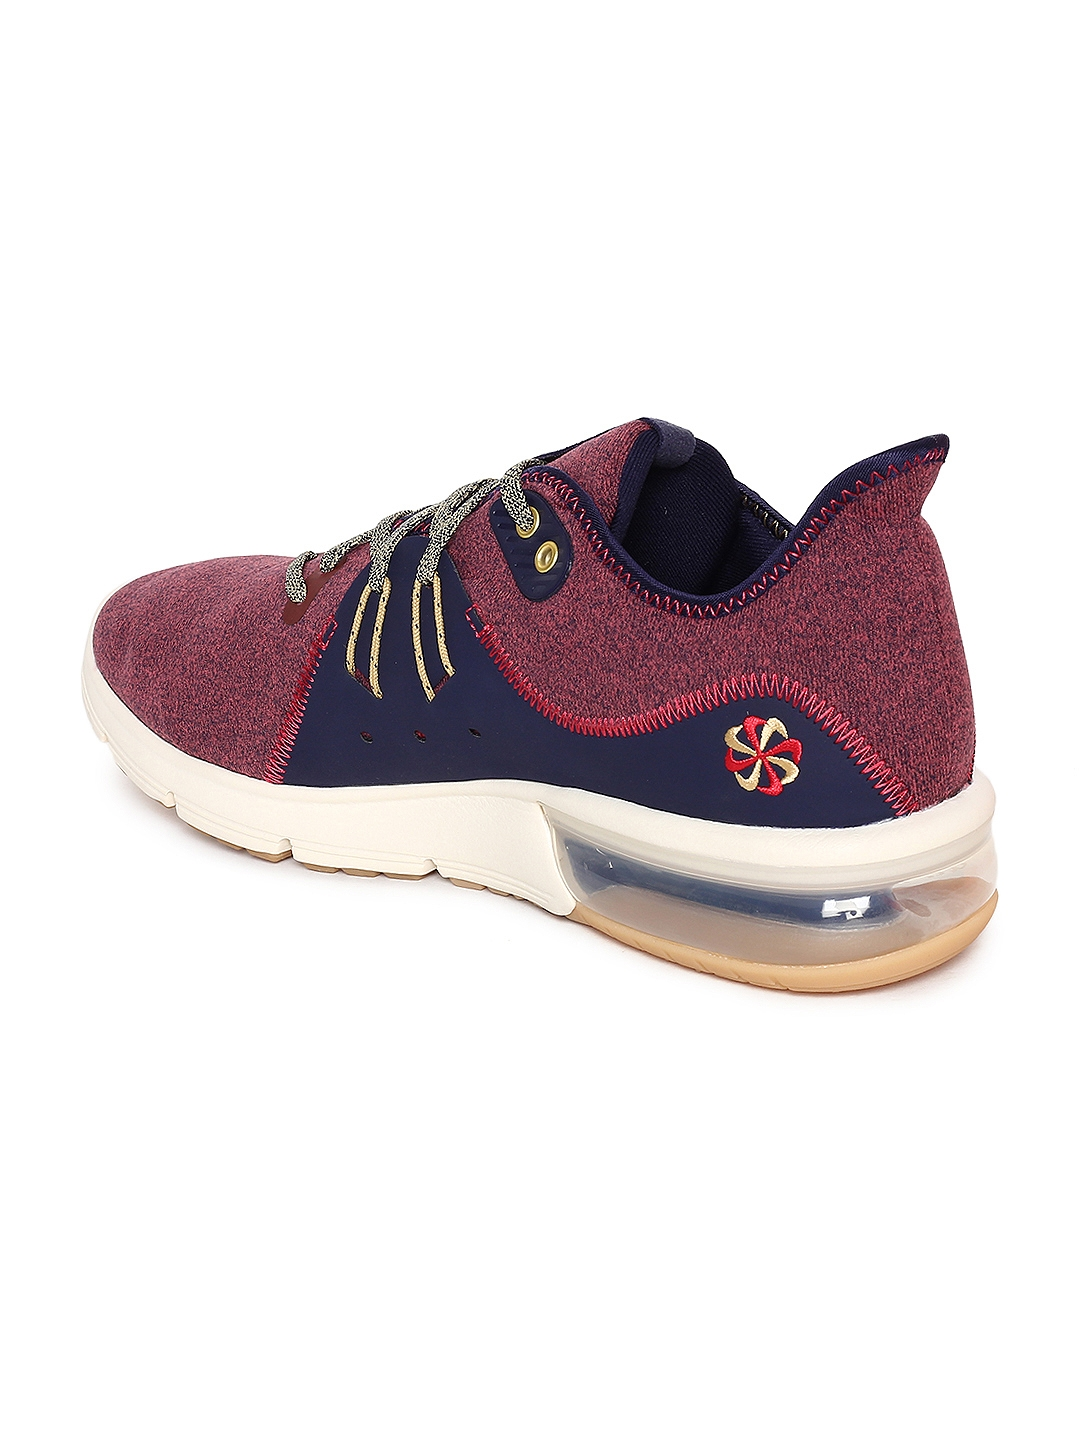 59e5ce76d97d Buy Nike Men Maroon   Navy Air Max Sequent 3 PRM VST Running Shoes ...